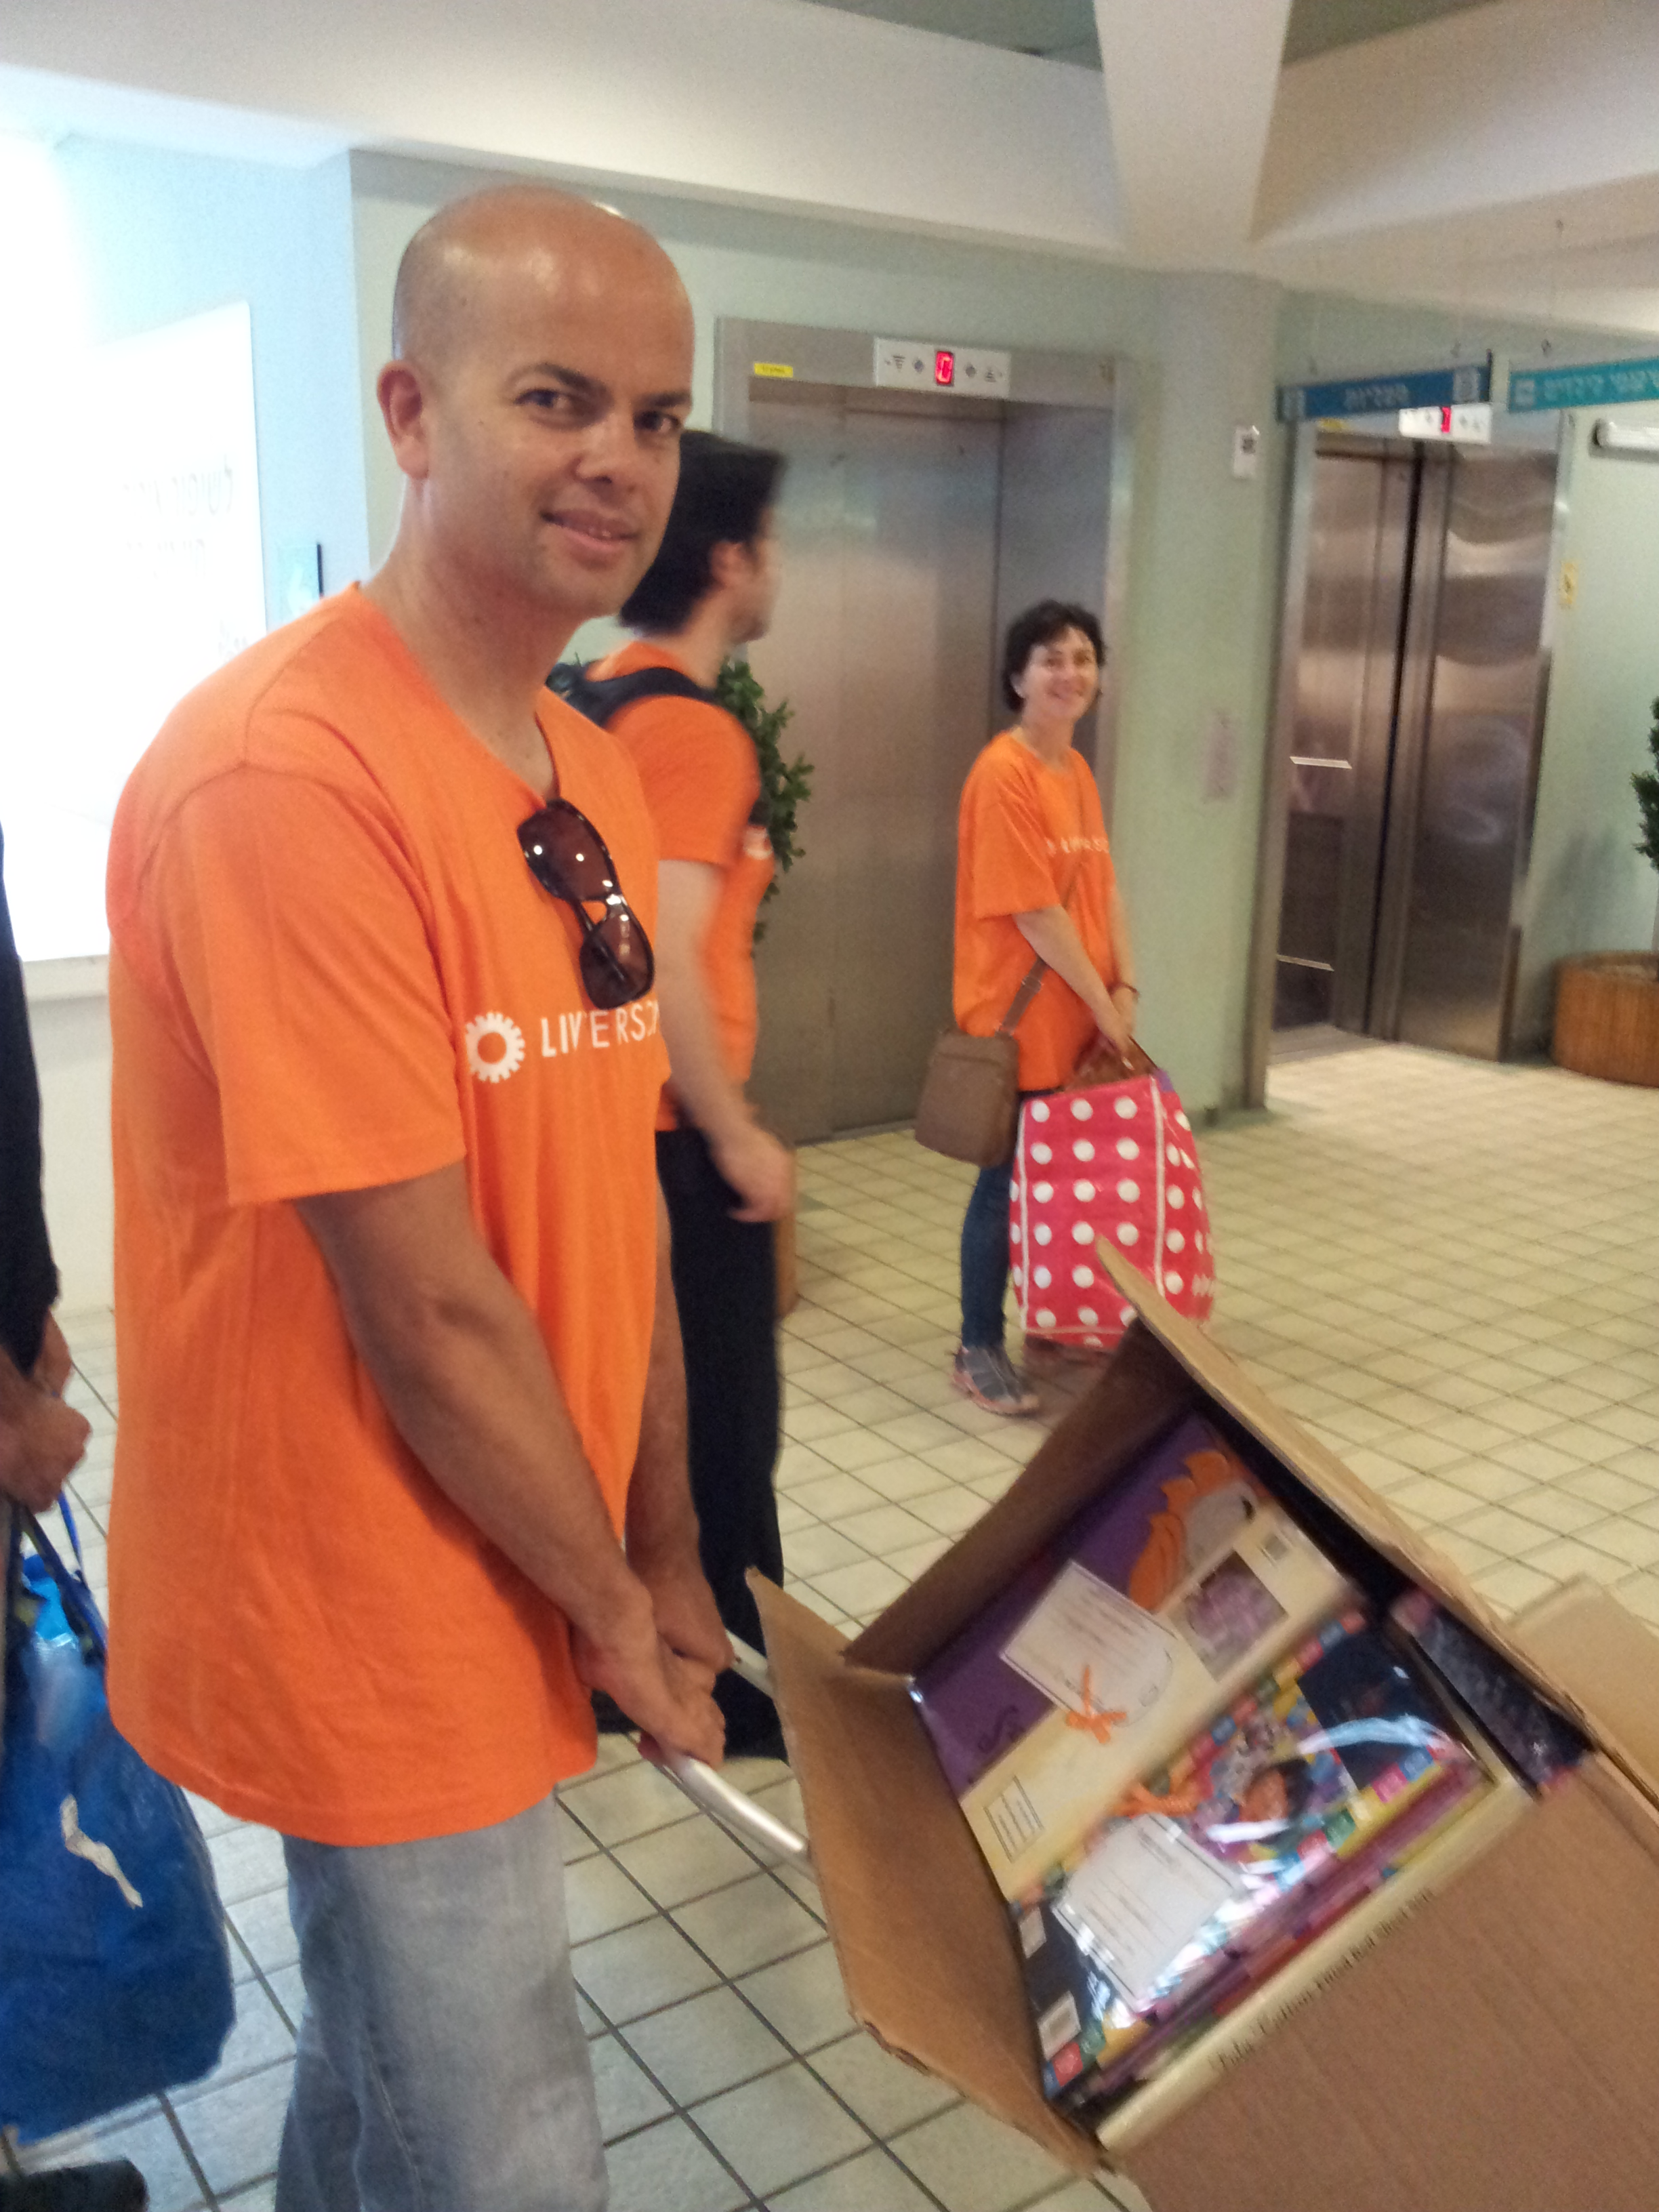 LIVEPERSON's 'Giving back' Day